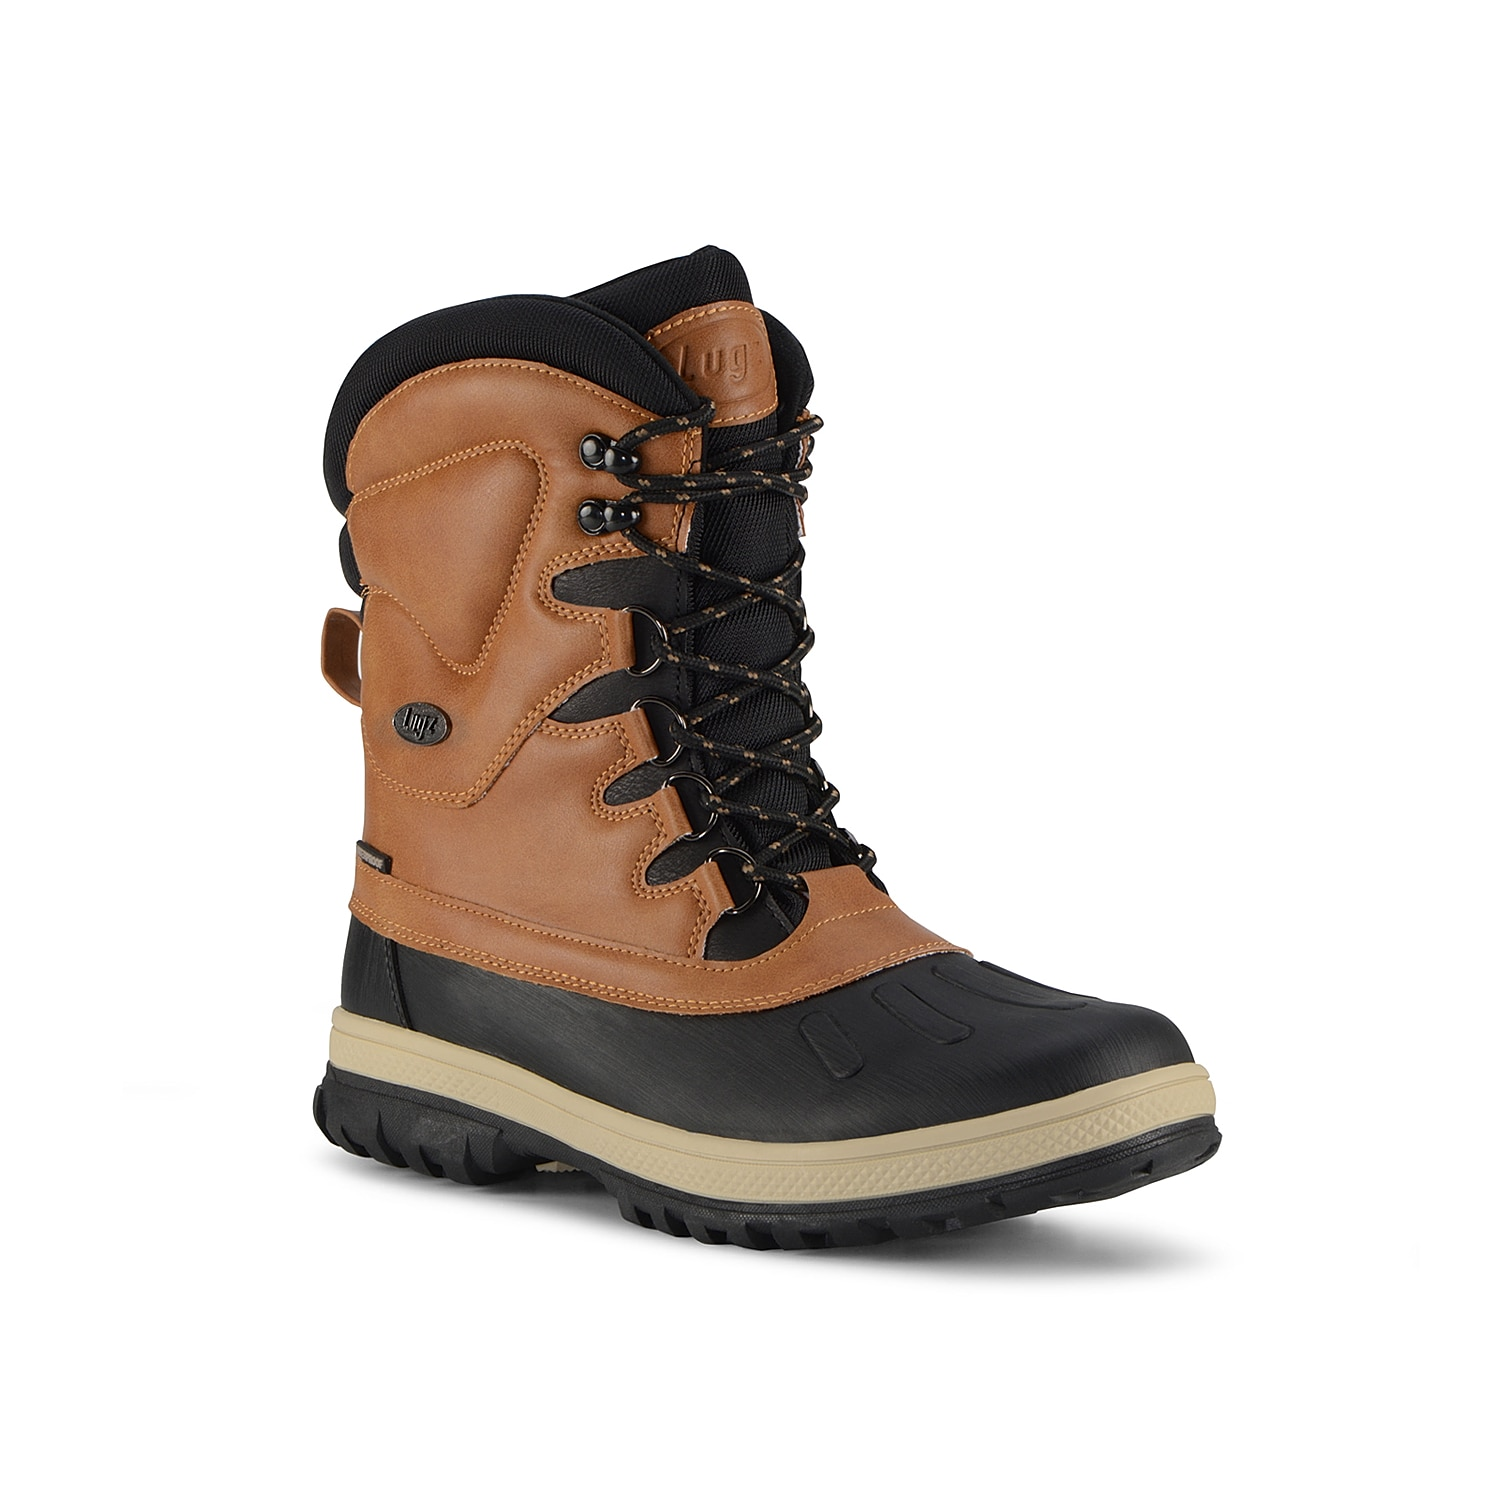 The cold weather season is no match for the Anorak duck boot from Lugz! A rubber traction sole ensures sturdy steps while the faux fur lining keeps you extra cozy.